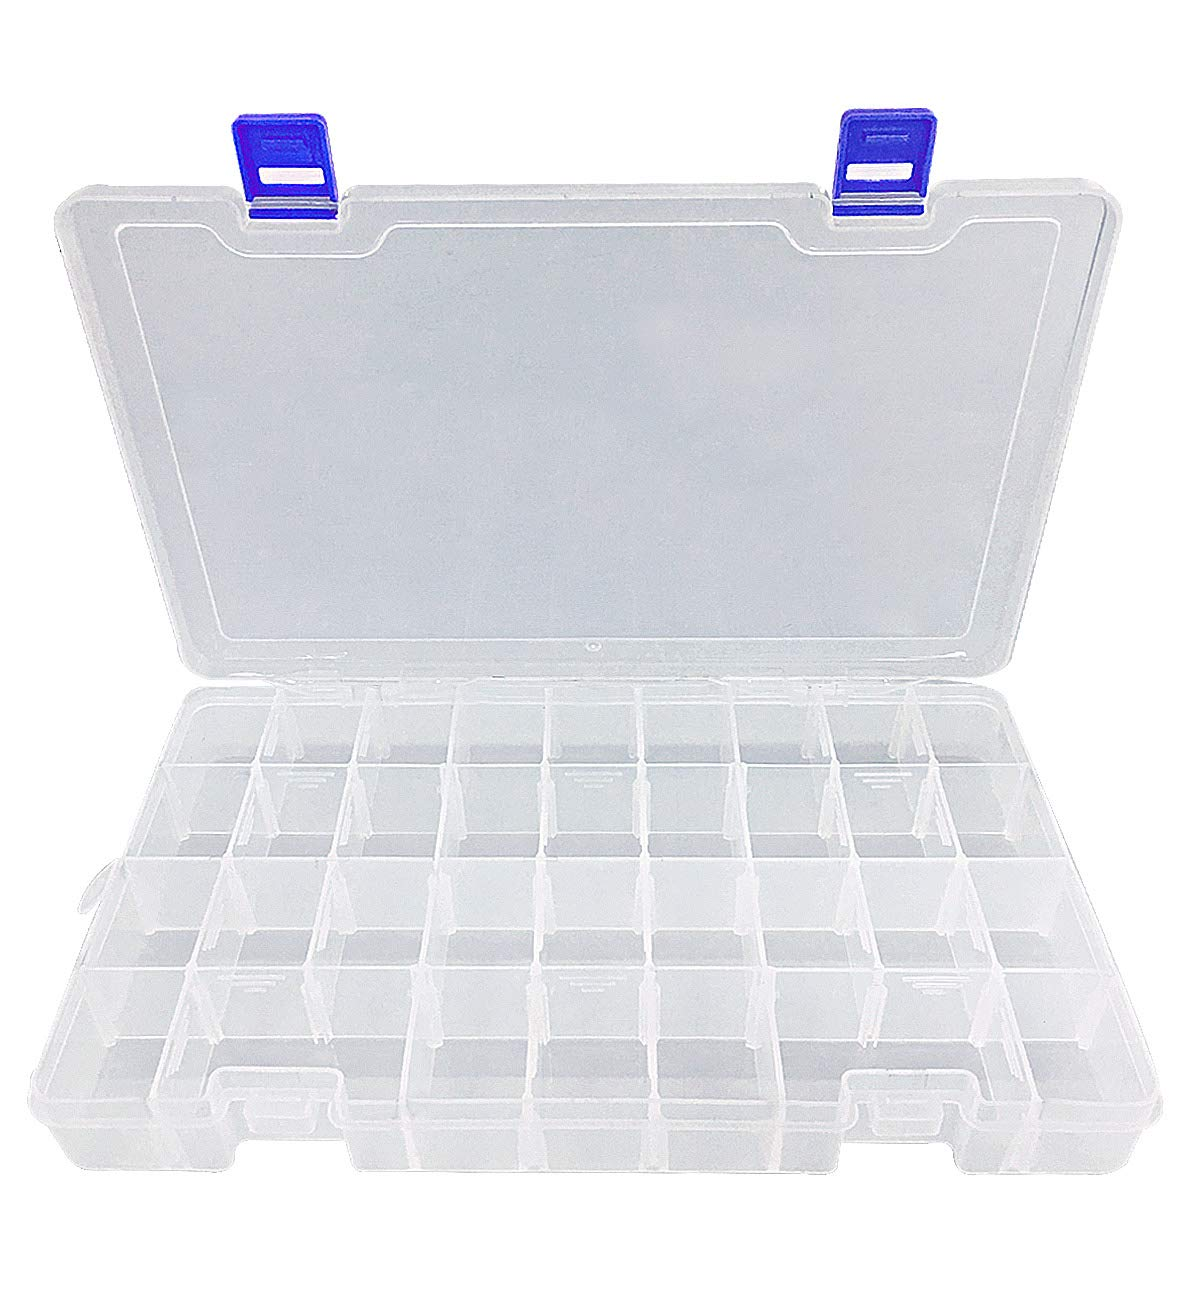 Plastic Jewelry Storage Box Adjustable Beads Storage Case Organizer with Removable Grid Compartment 36 Slots